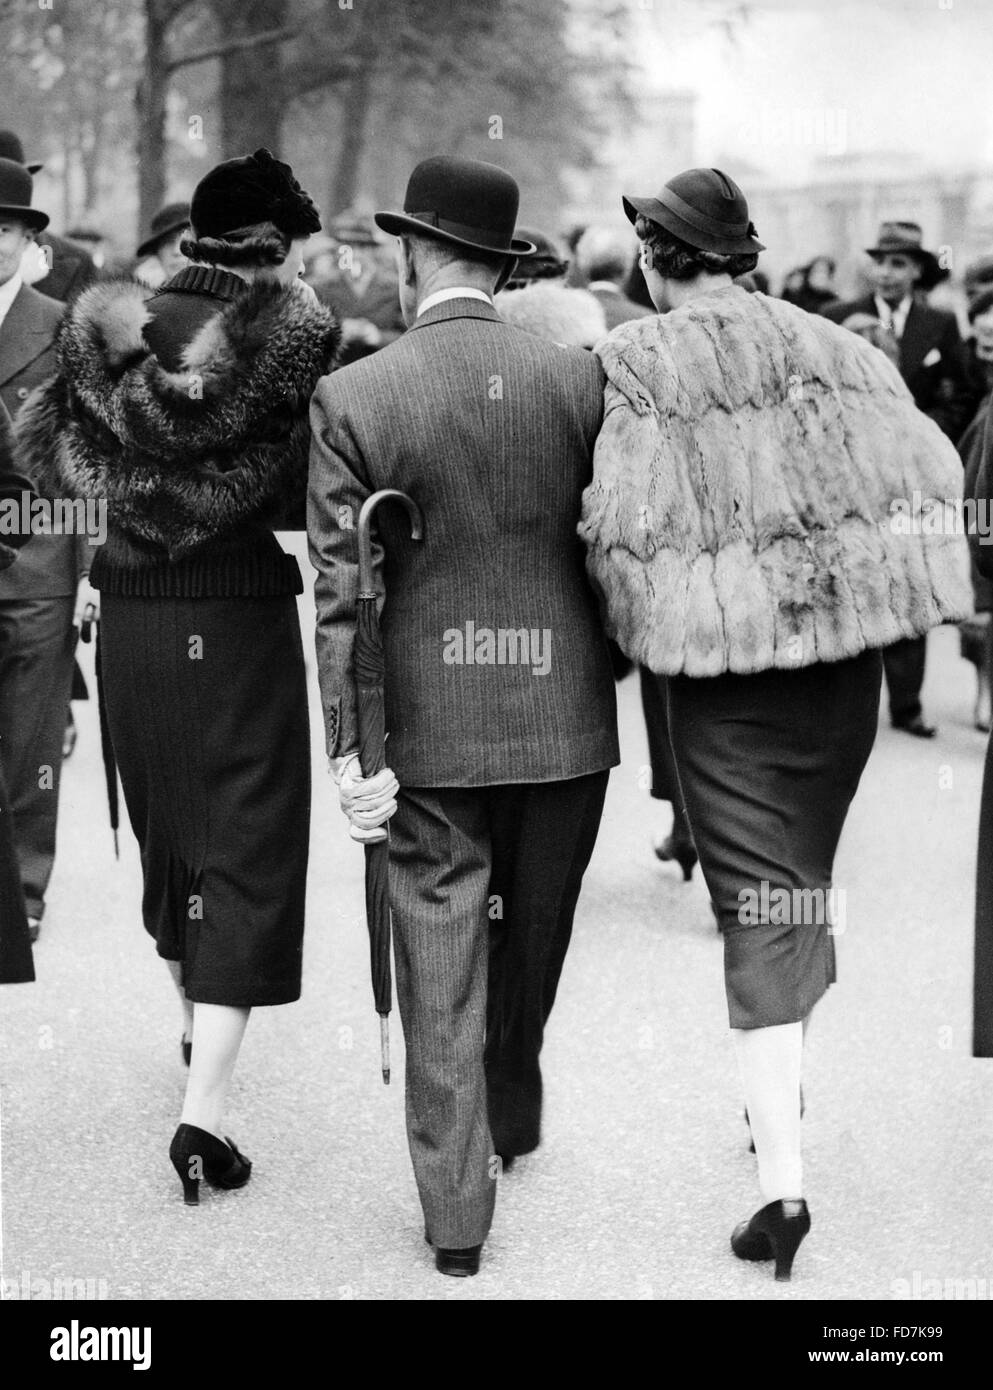 High society in England, 1935 - Stock Image